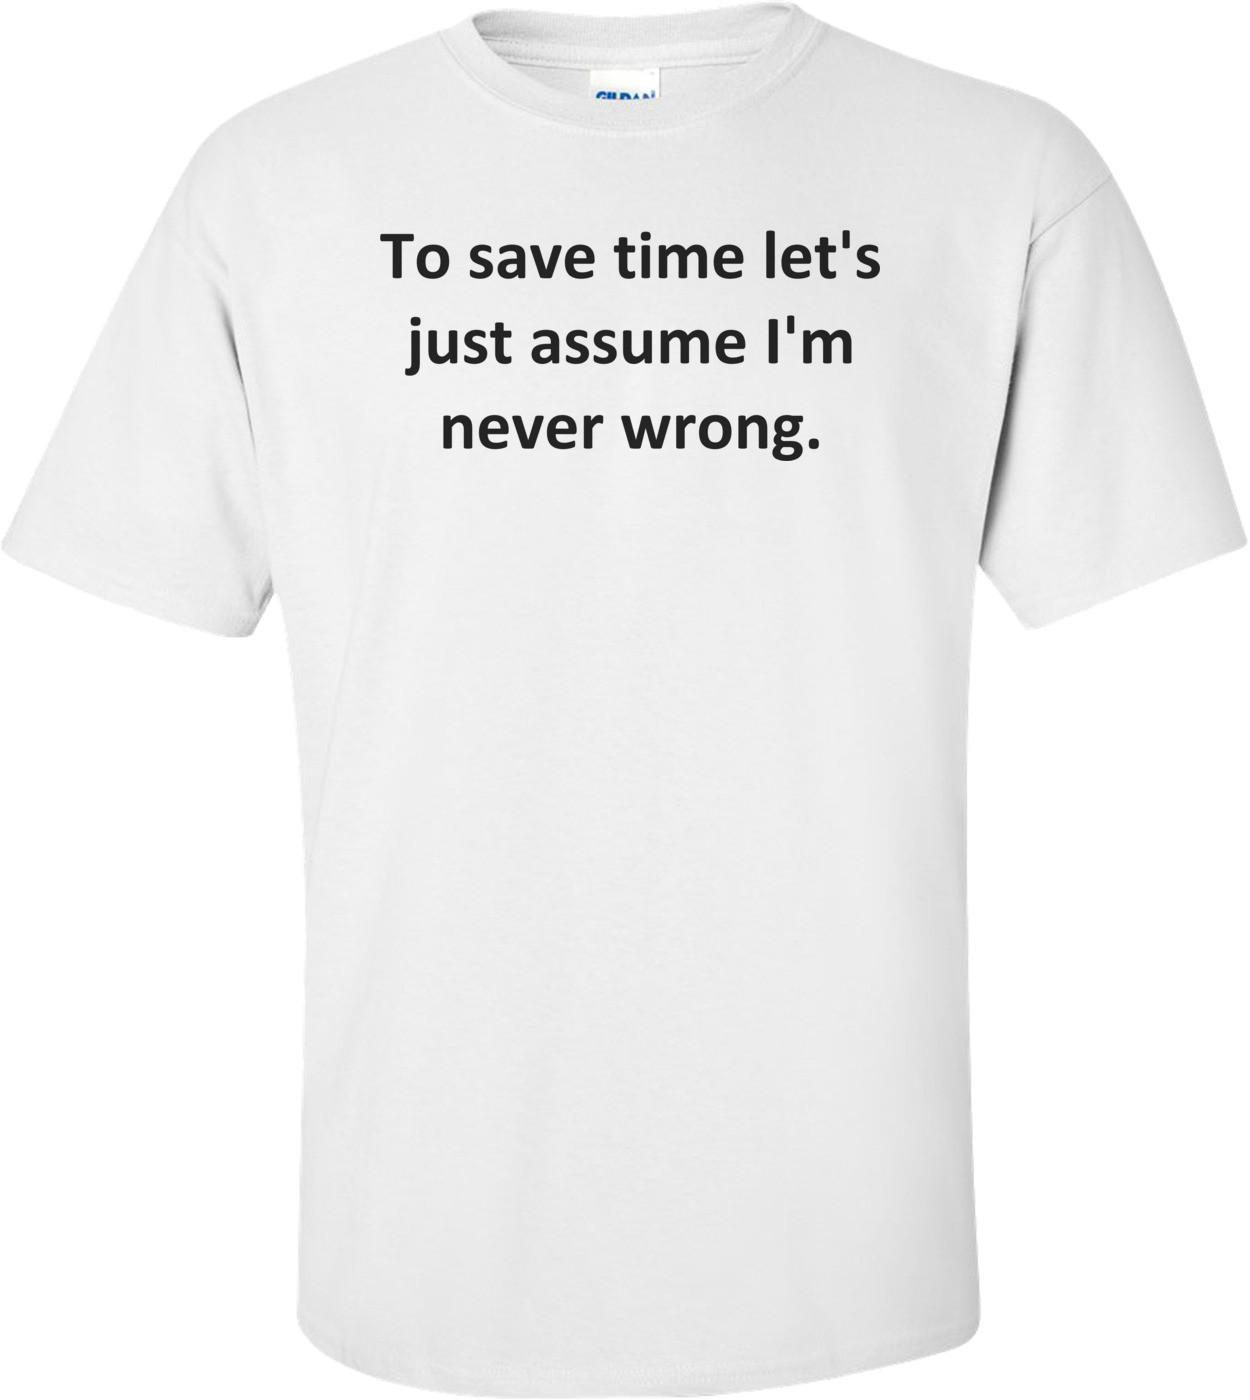 To save time let's just assume I'm never wrong. Shirt